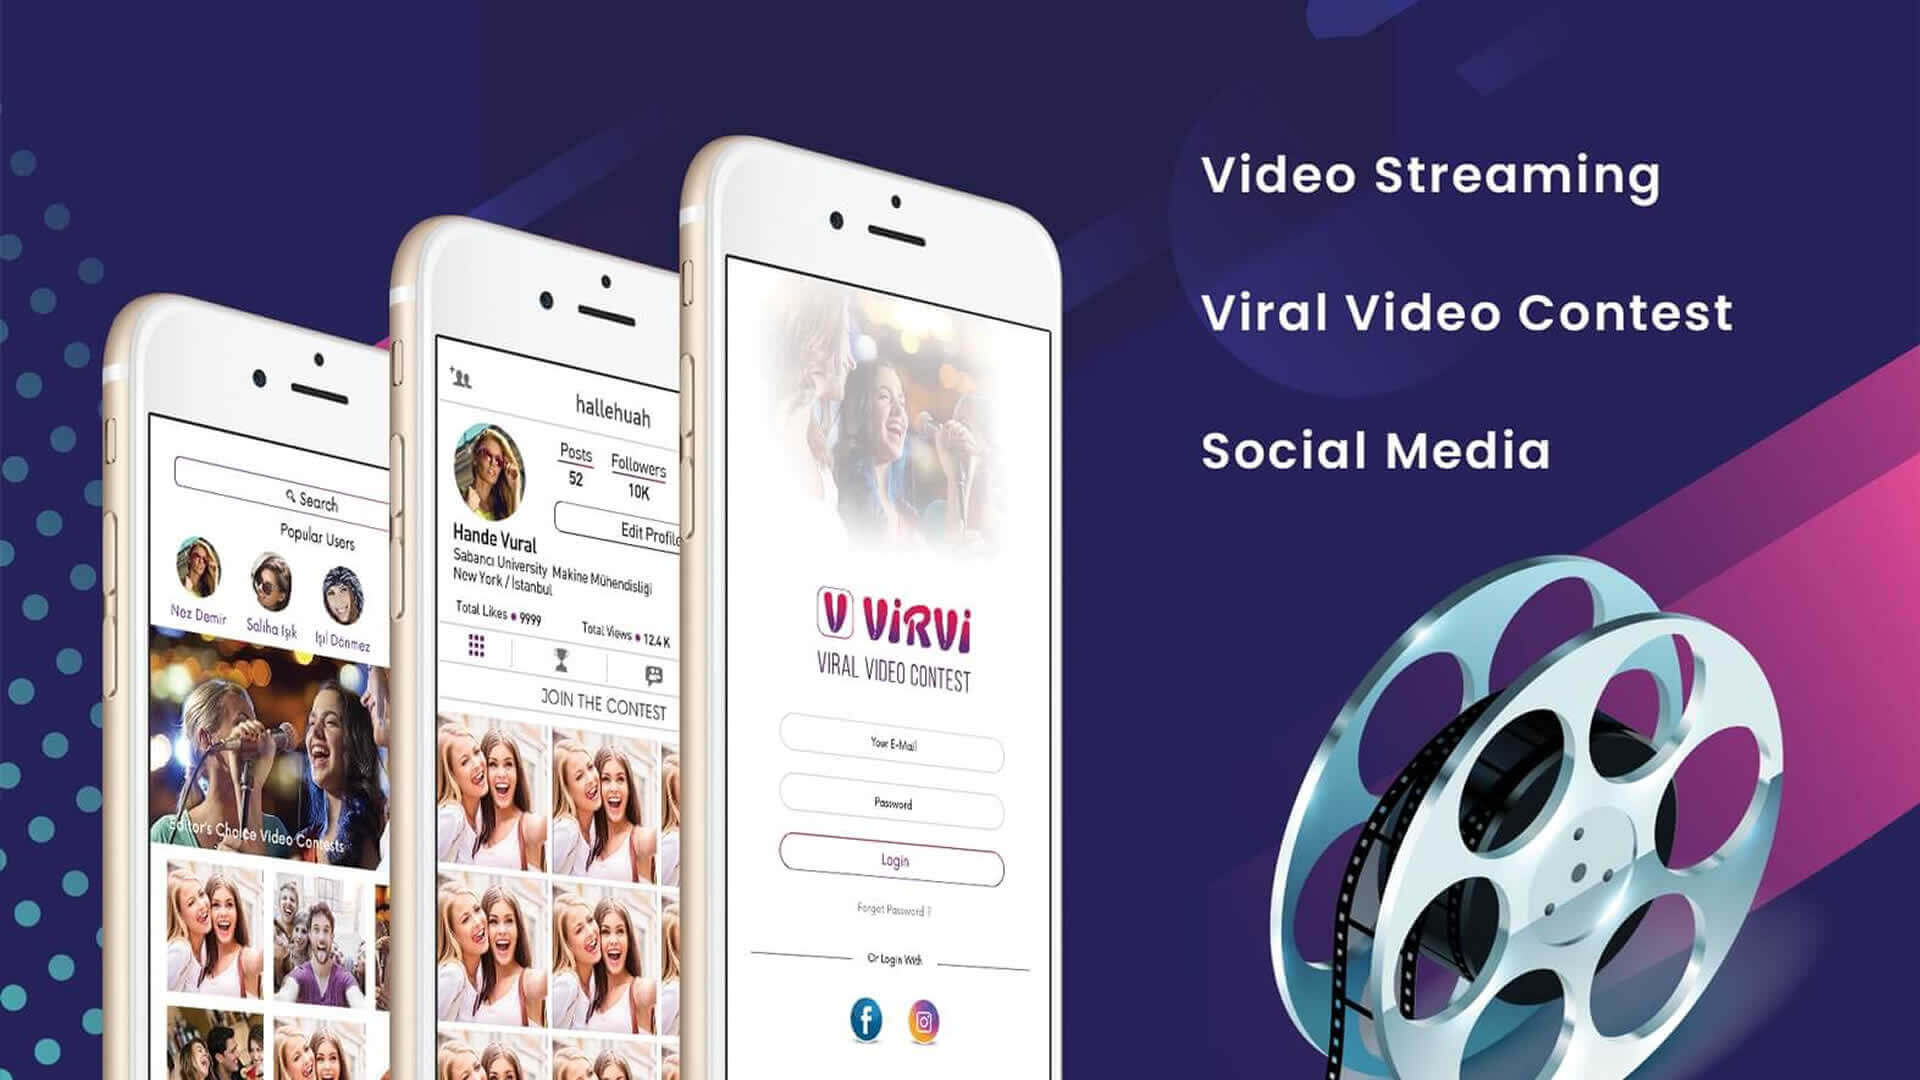 Social Media Viral Video Streaming App2